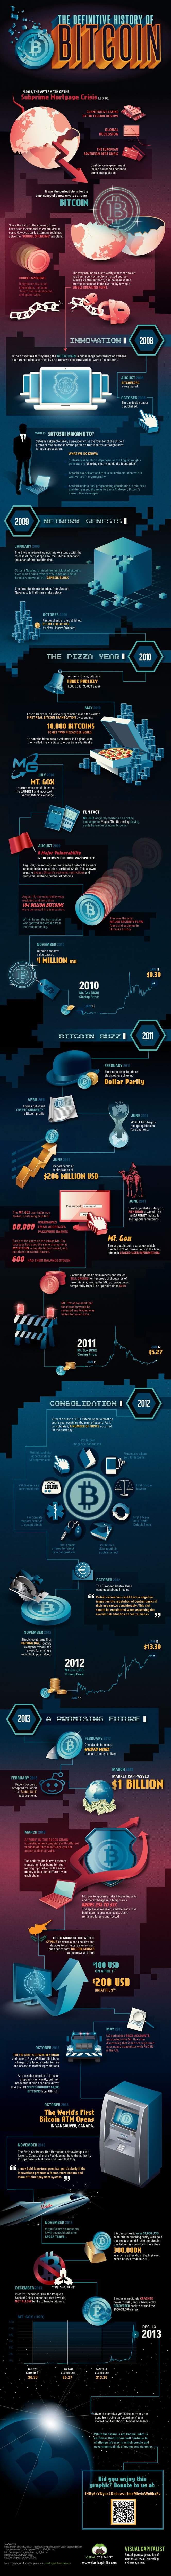 http://www.visualcapitalist.com/the-definitive-history-of-bitcoin